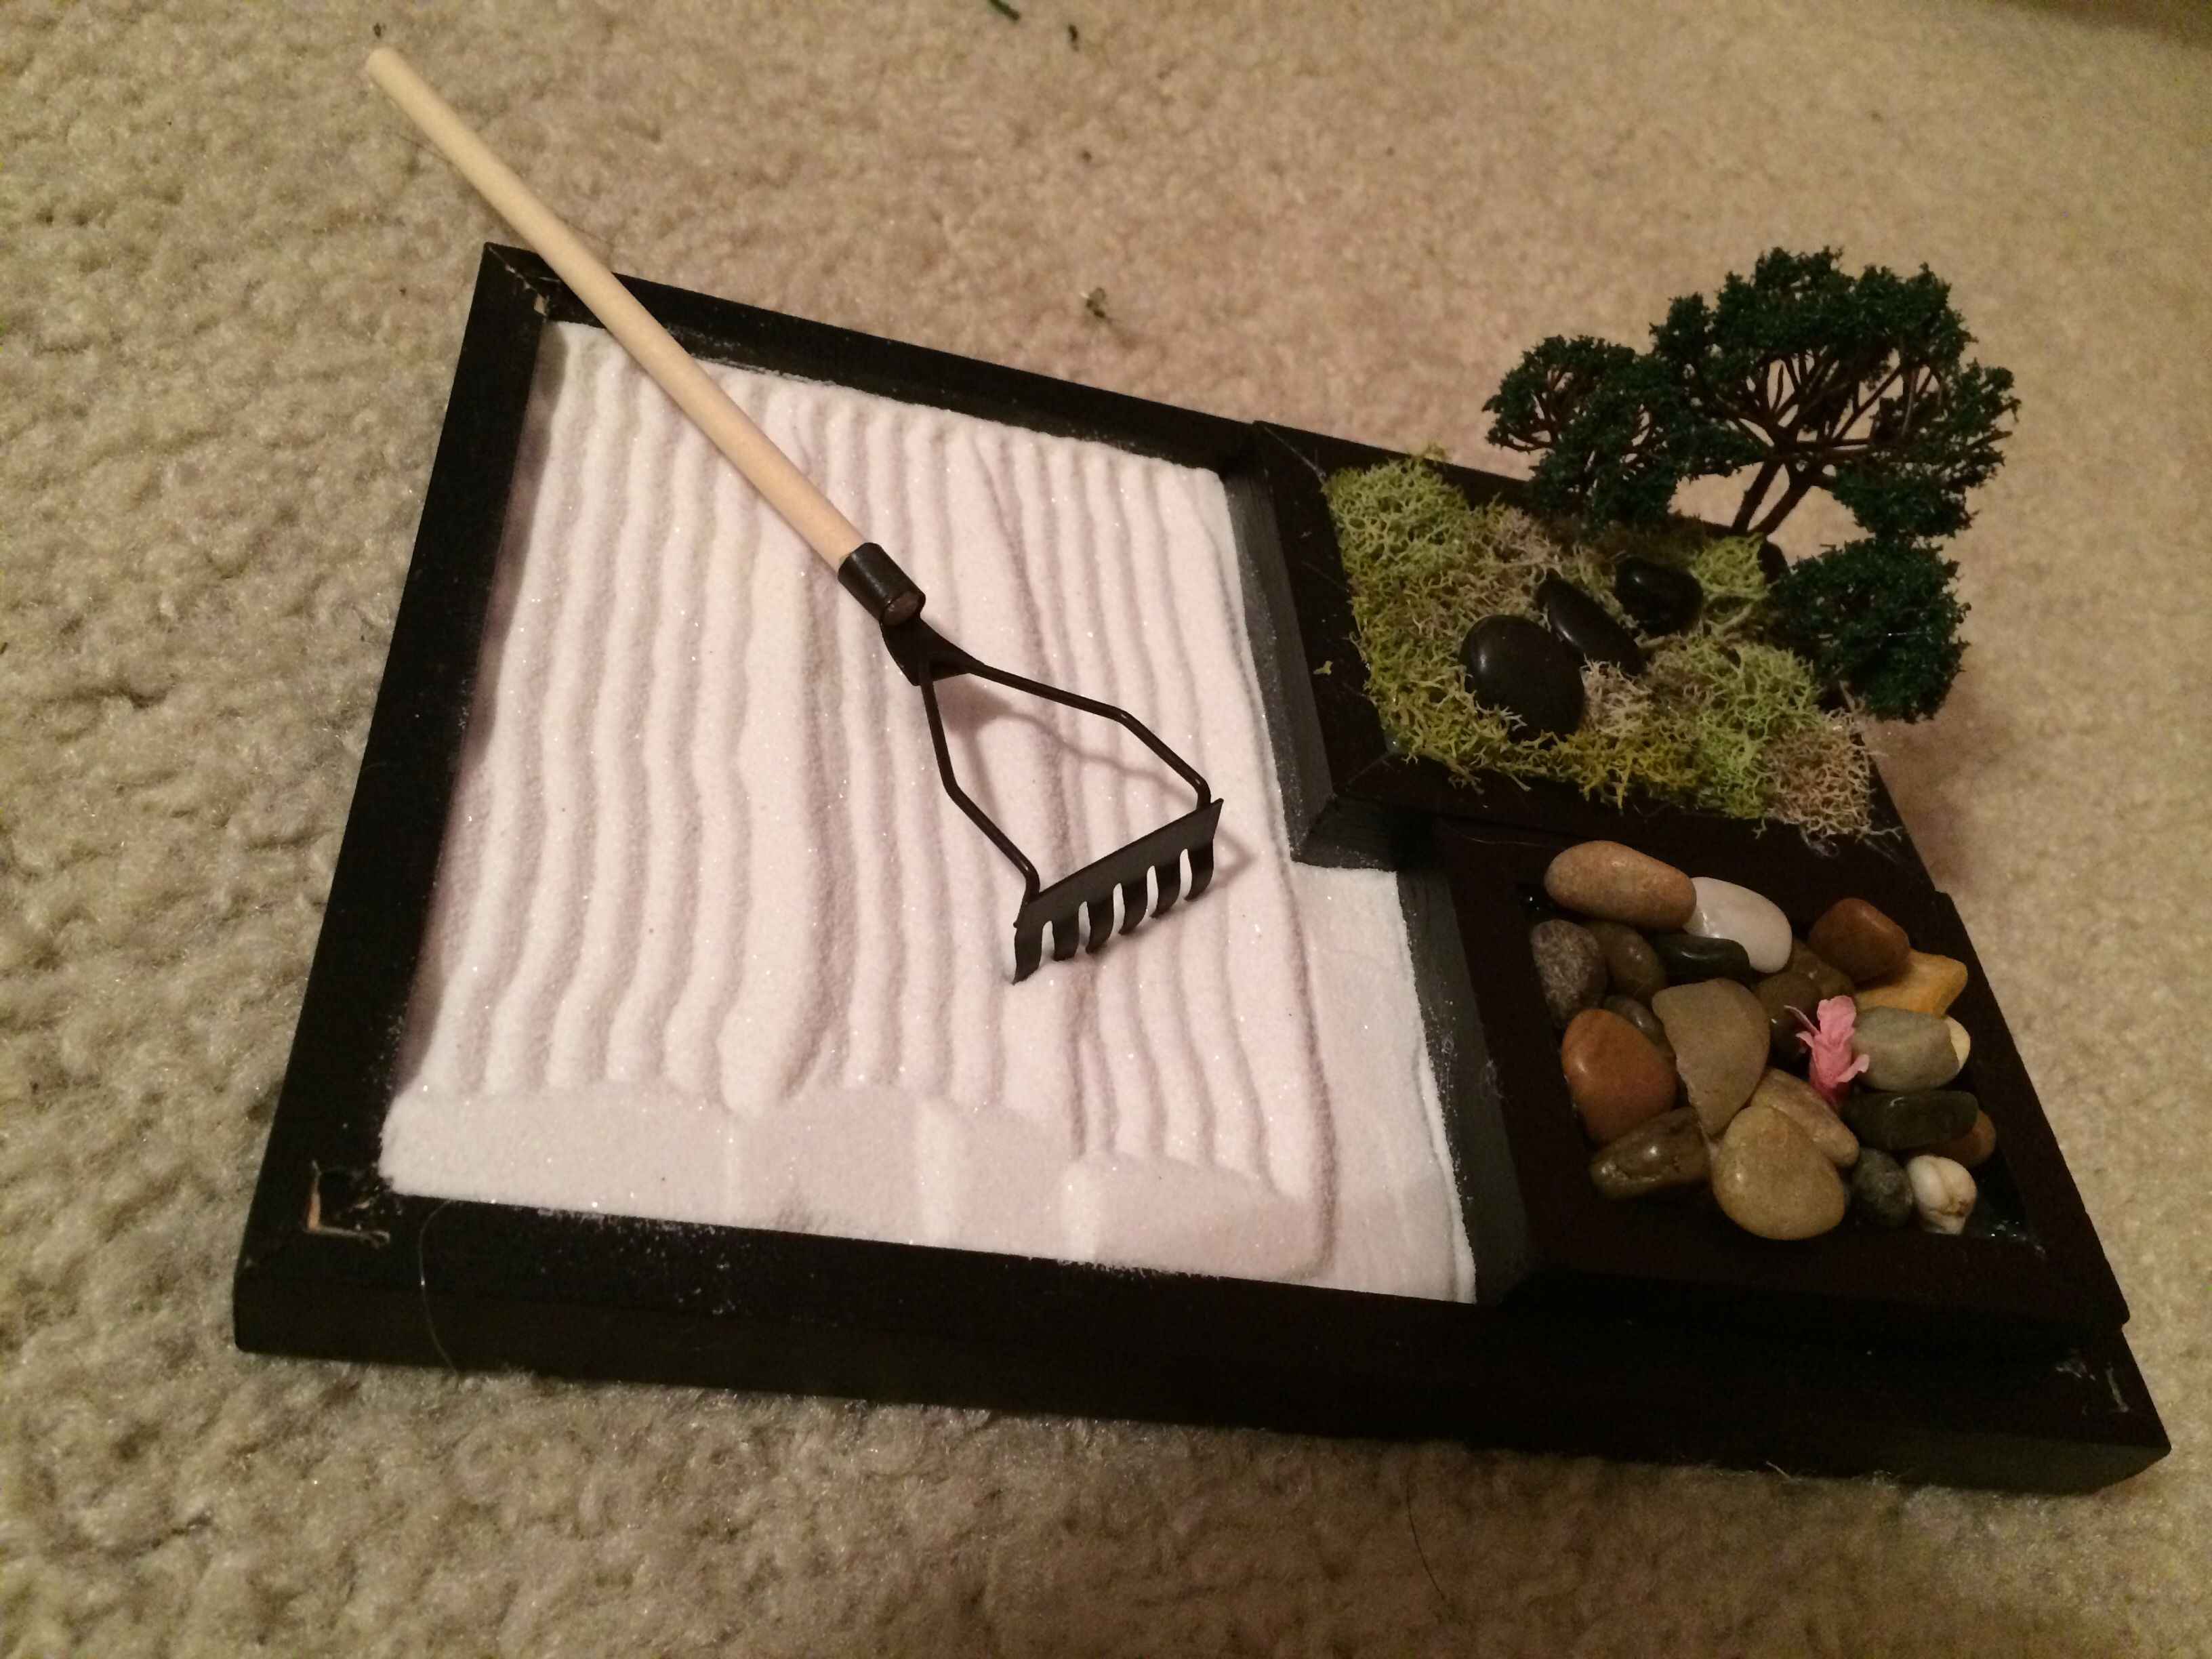 Bon I Made A Zen Garden Out Of Small Canvases, Moss, River Stones, Sand